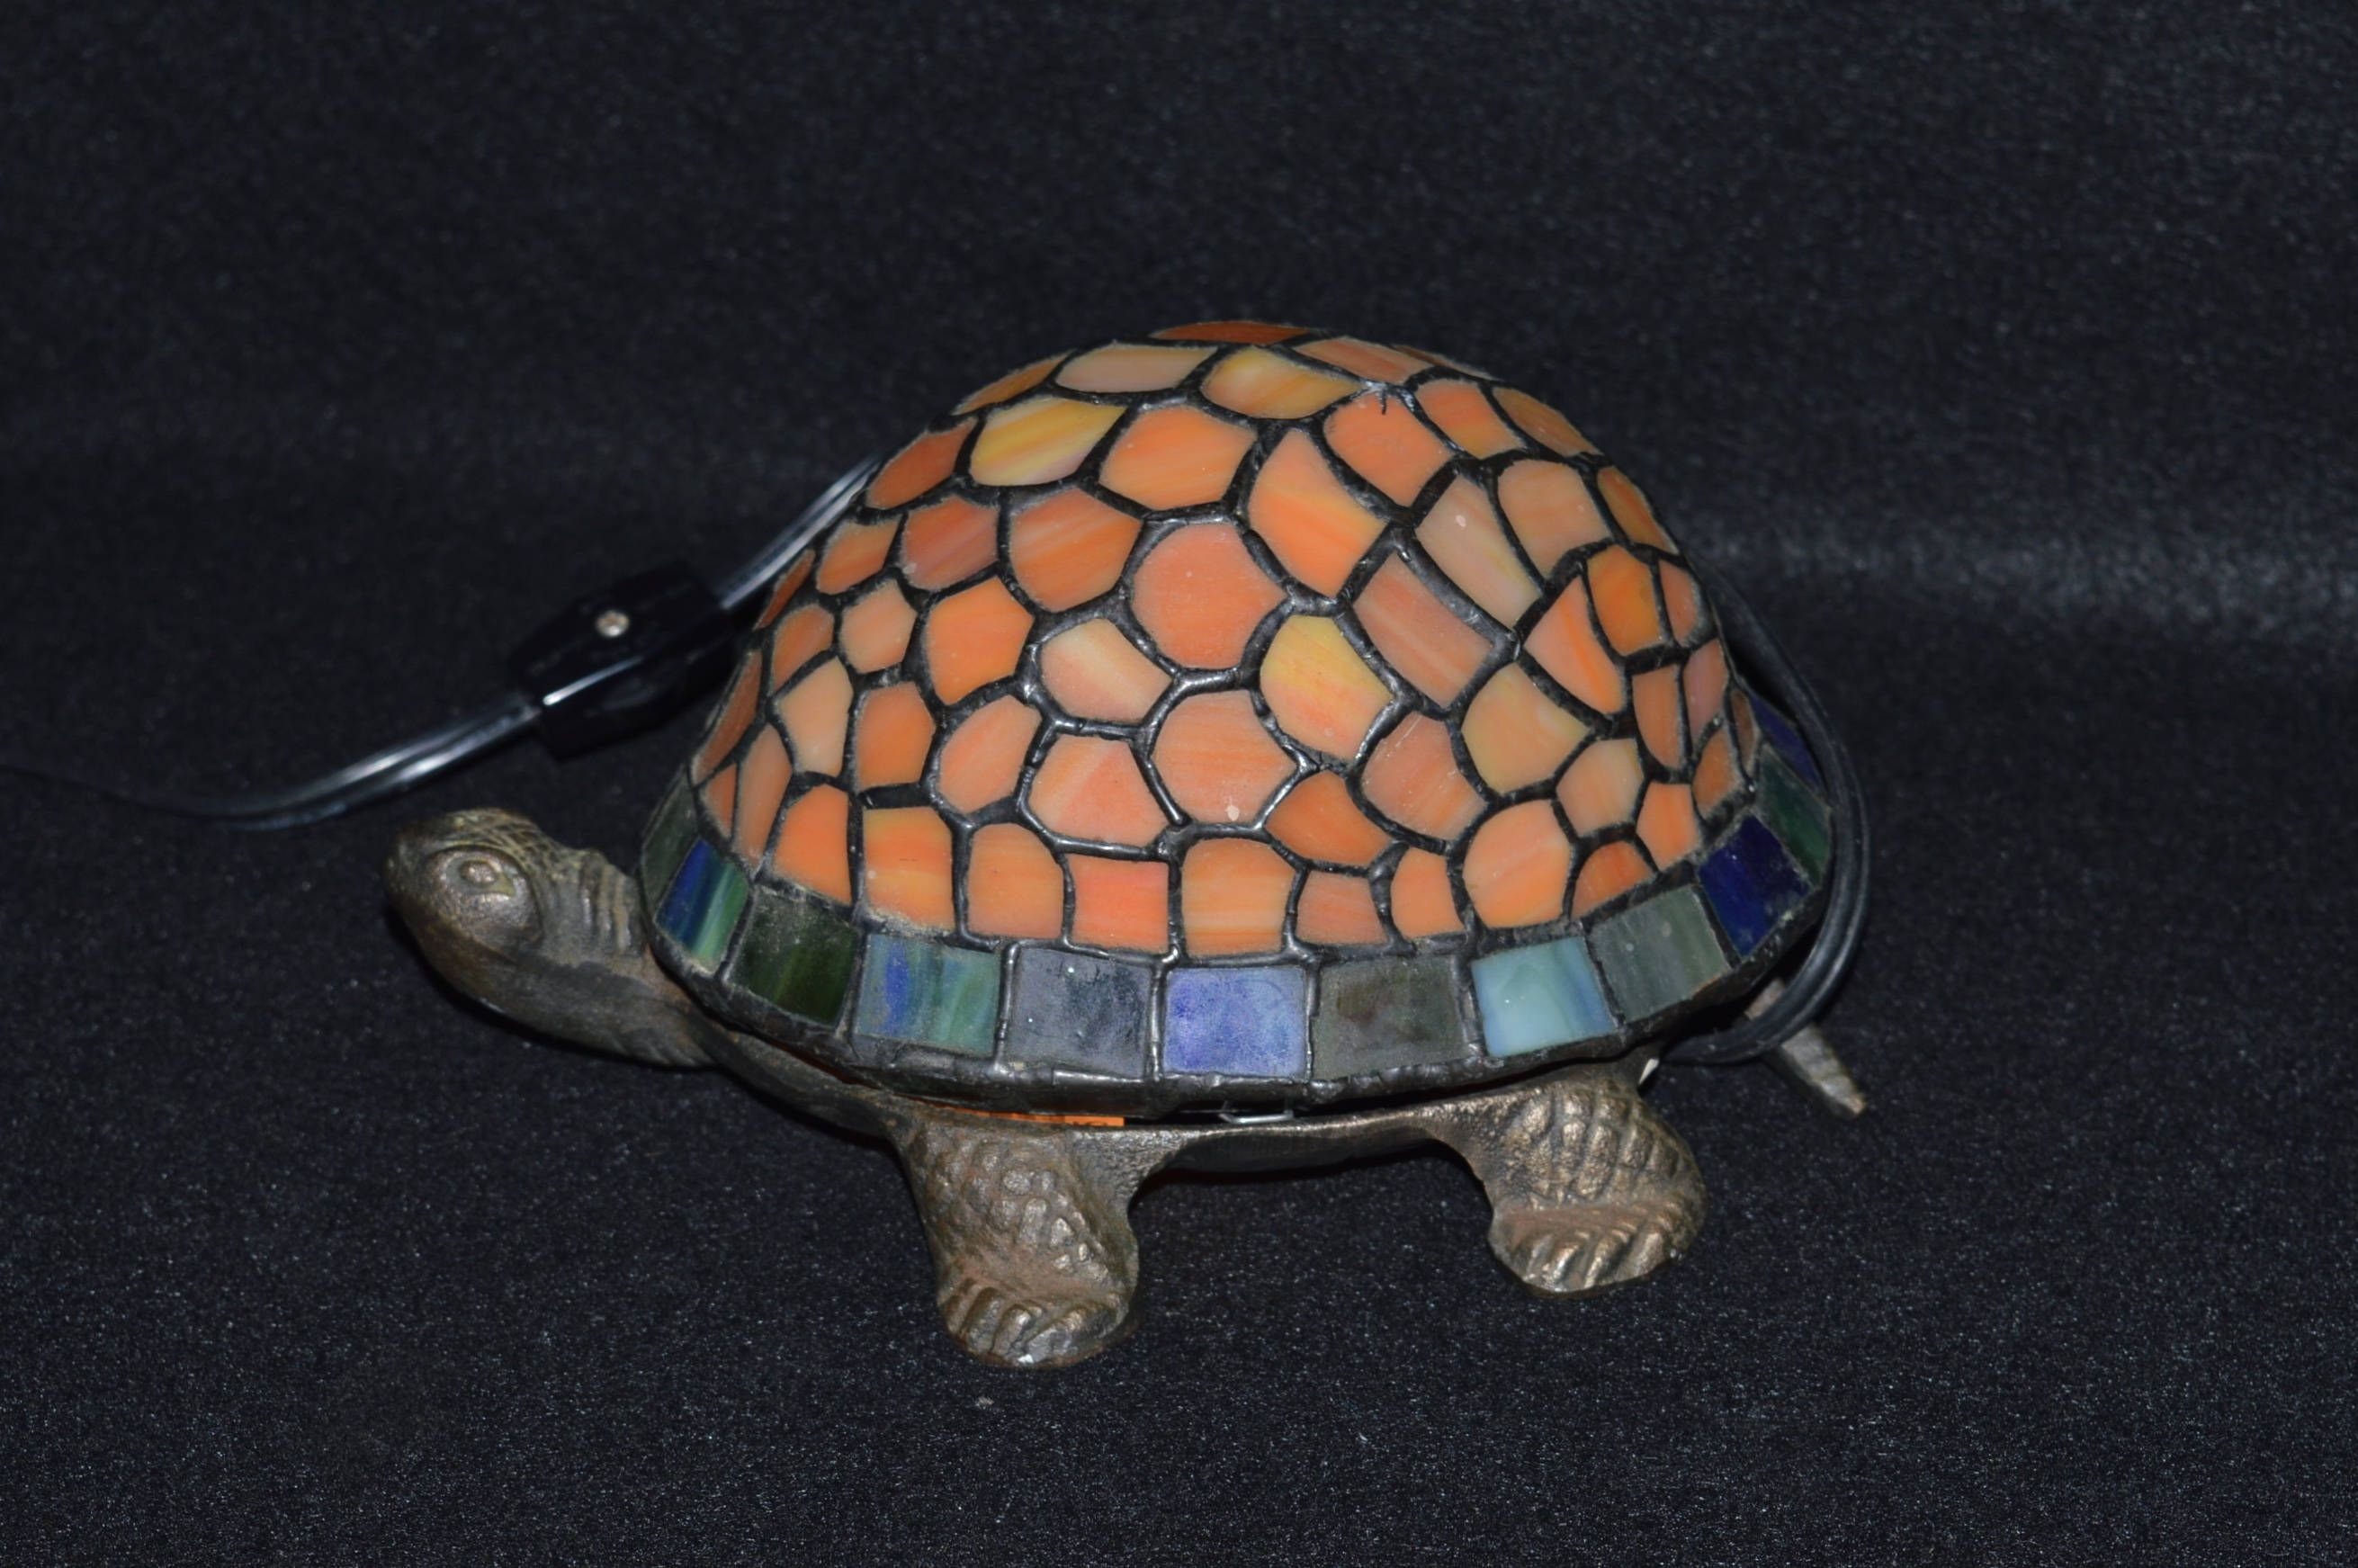 Stained glass turtle lamp cast iron turtle night light w stained stained glass turtle lamp cast iron turtle night light w stained glass shade tiffany style turtle lamp turtle table lamp tortoise lamp mozeypictures Gallery